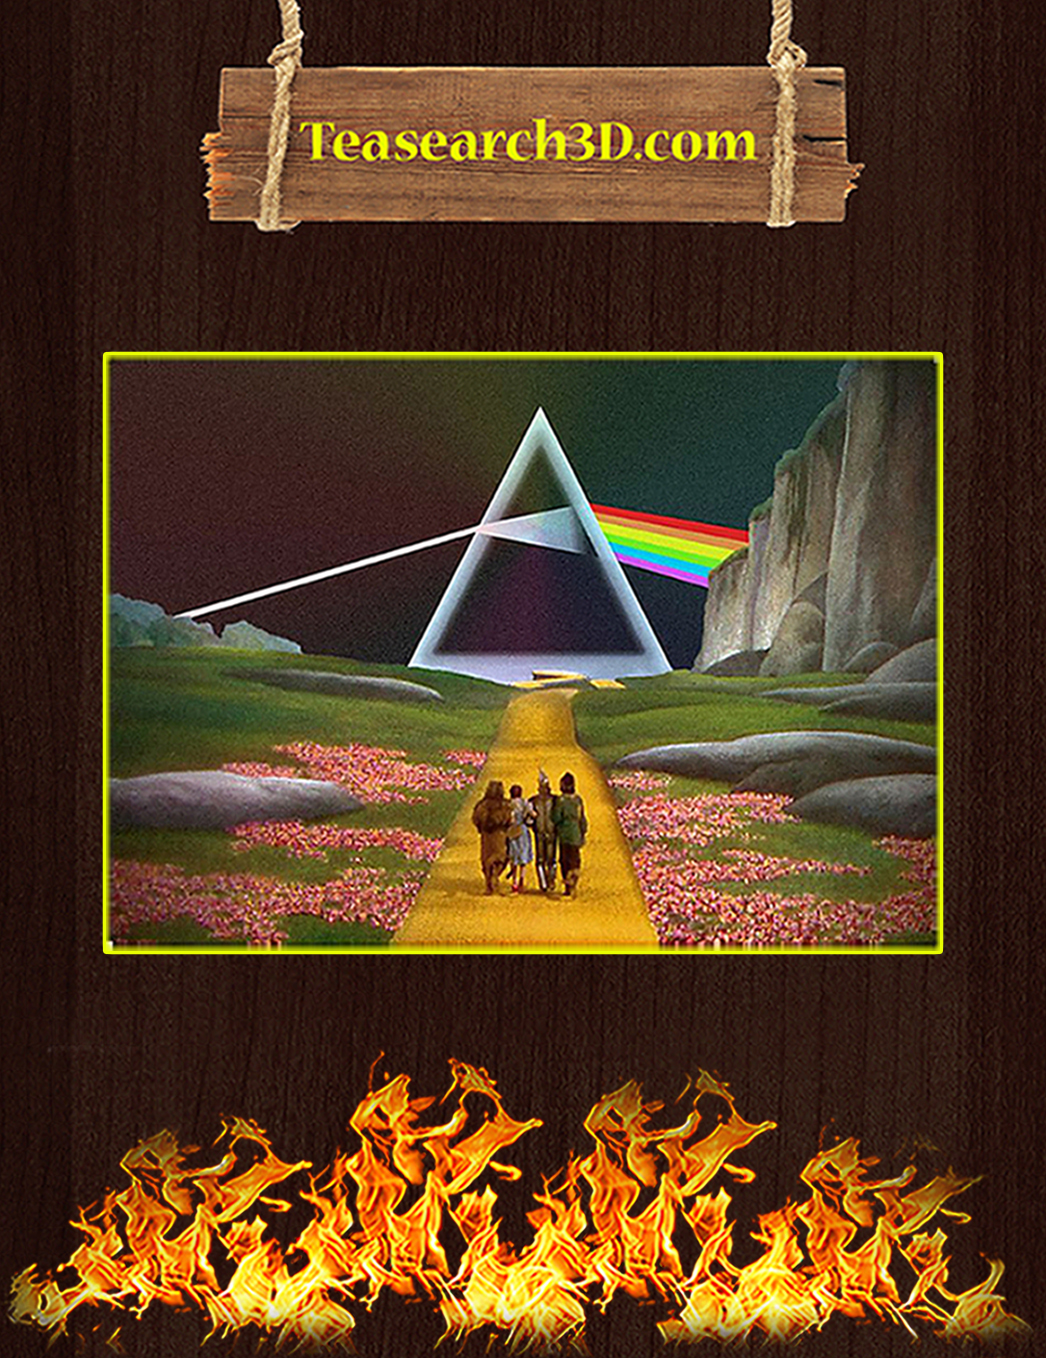 Pink floyd the dark side of the moon wizard of oz poster A1